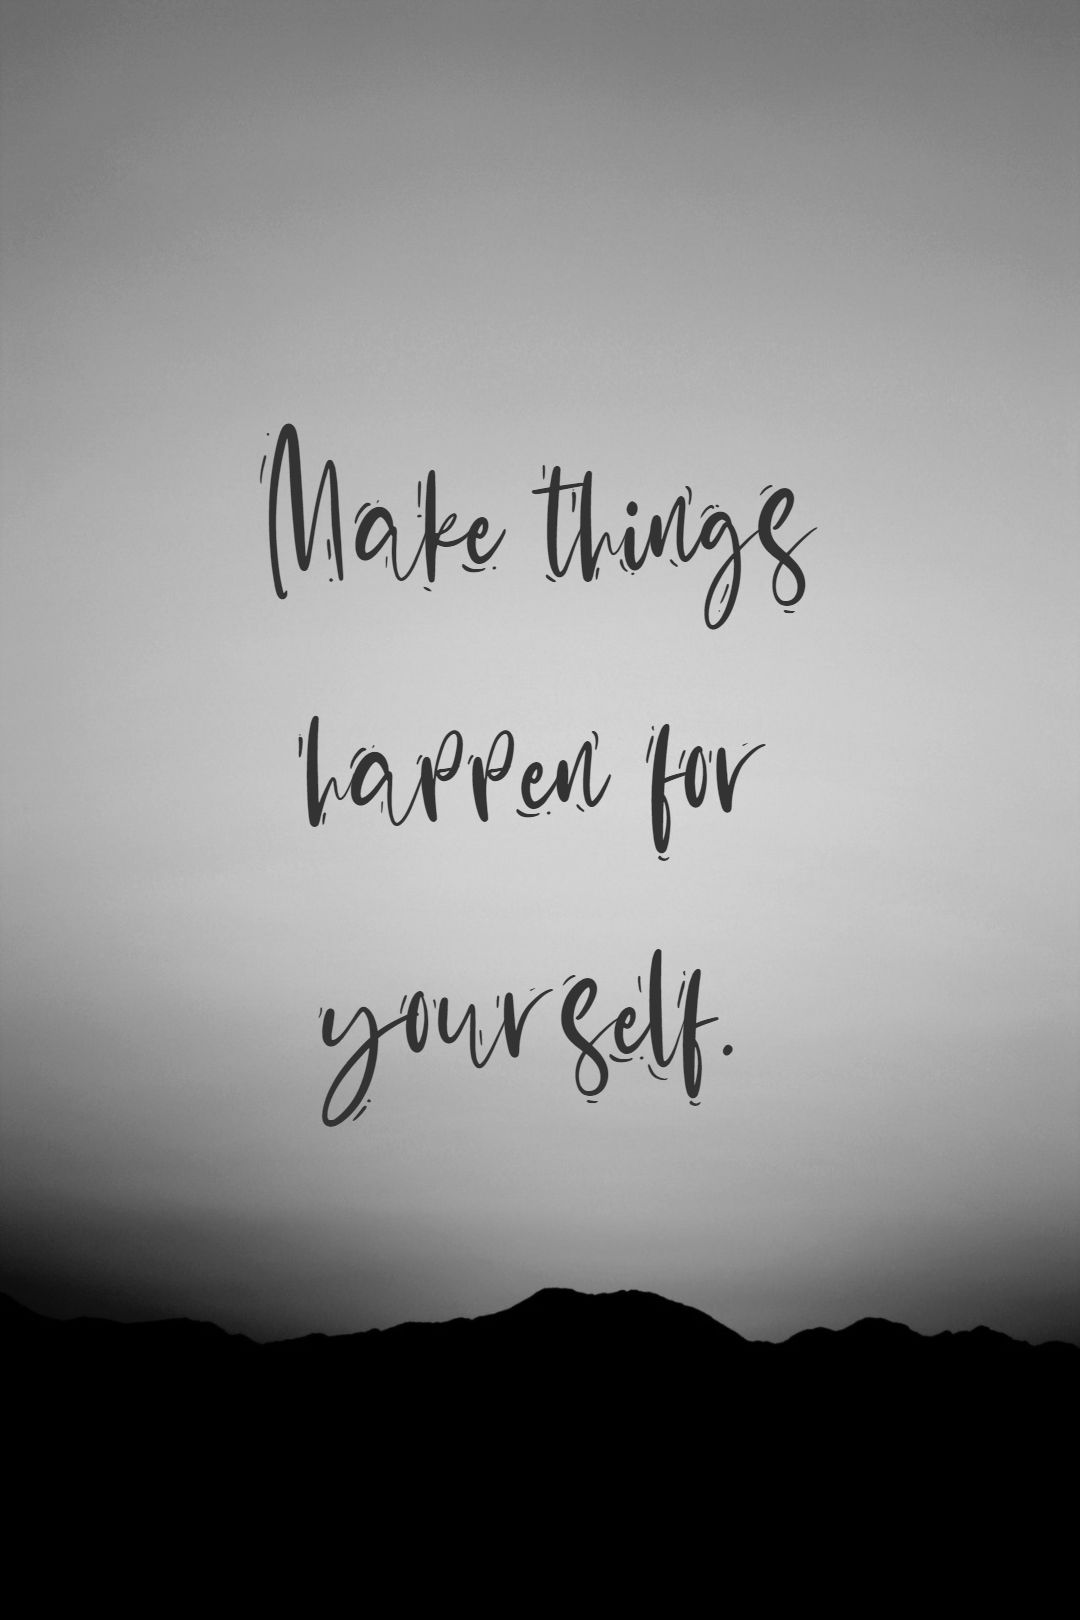 Quotes image of Make things happen for yourself.